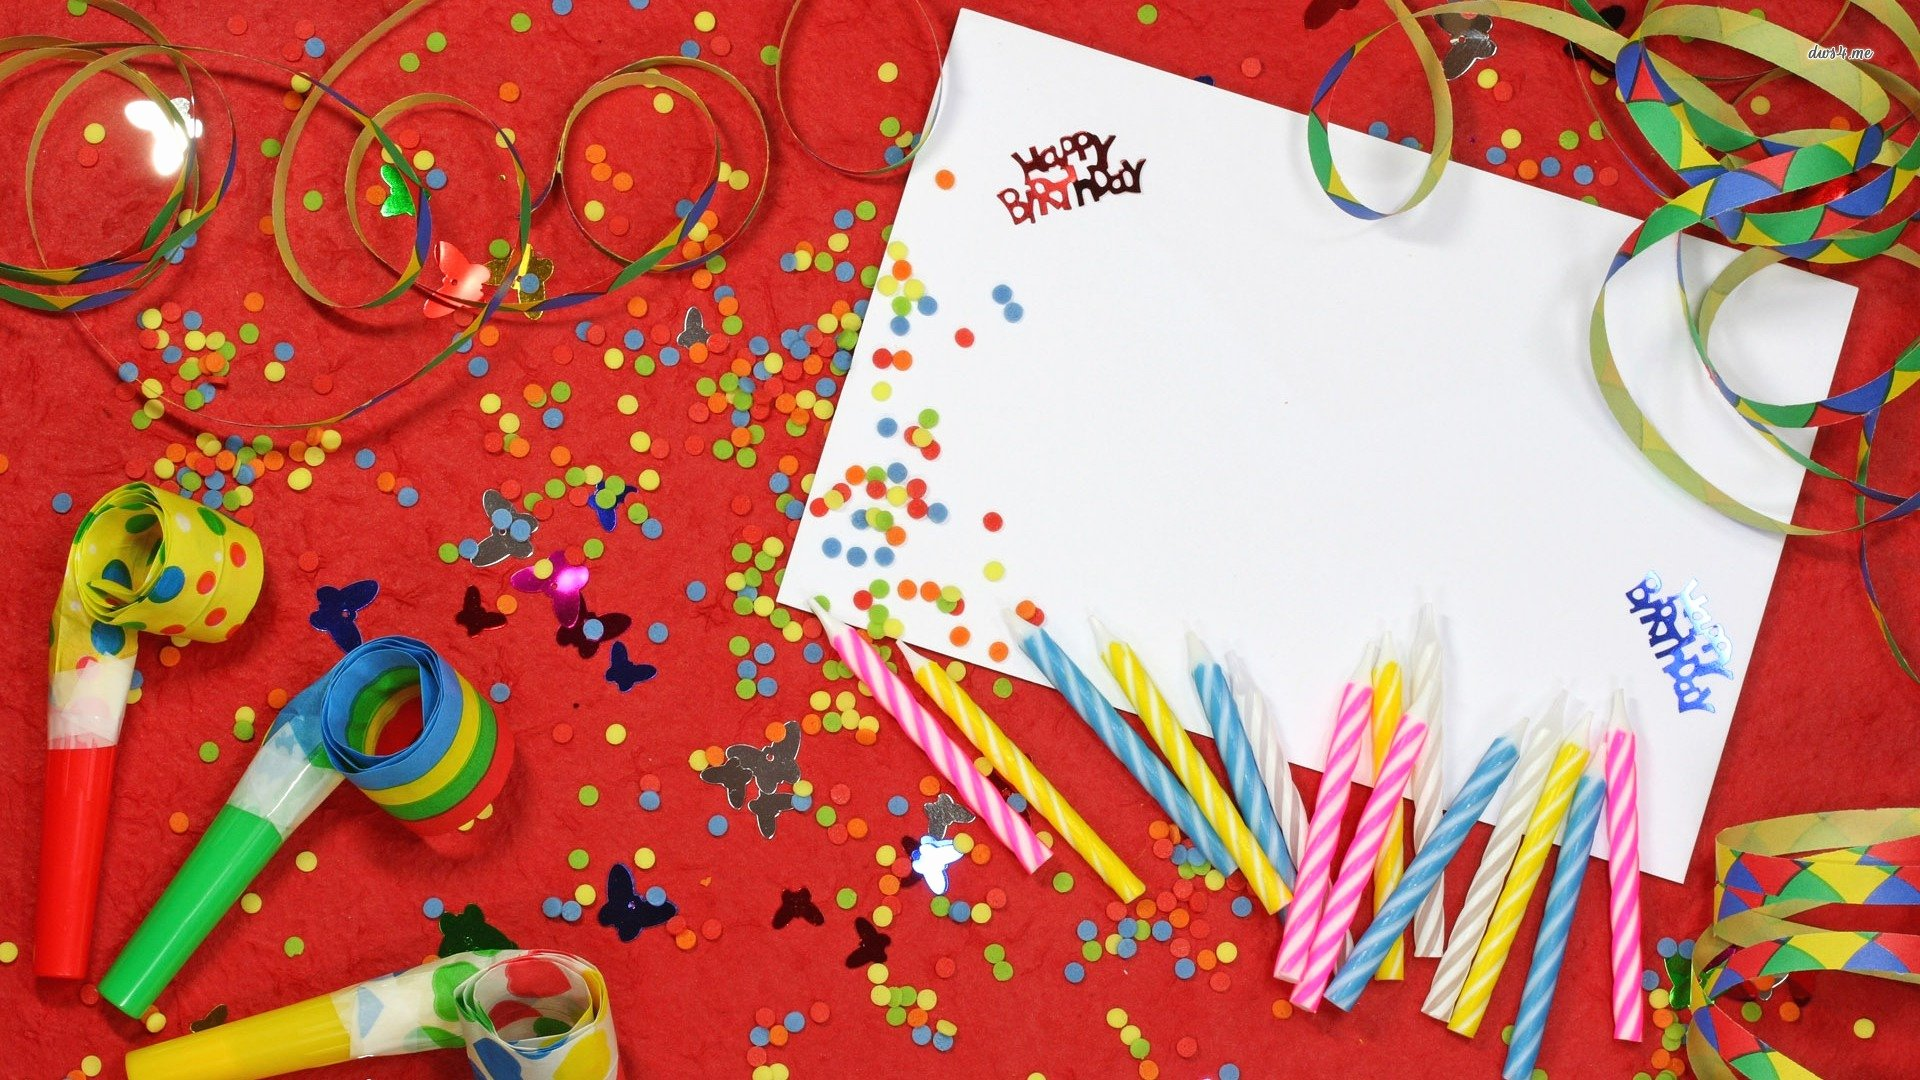 Happy Bday Wallpapers Free Fresh Birthday Wallpapers and S